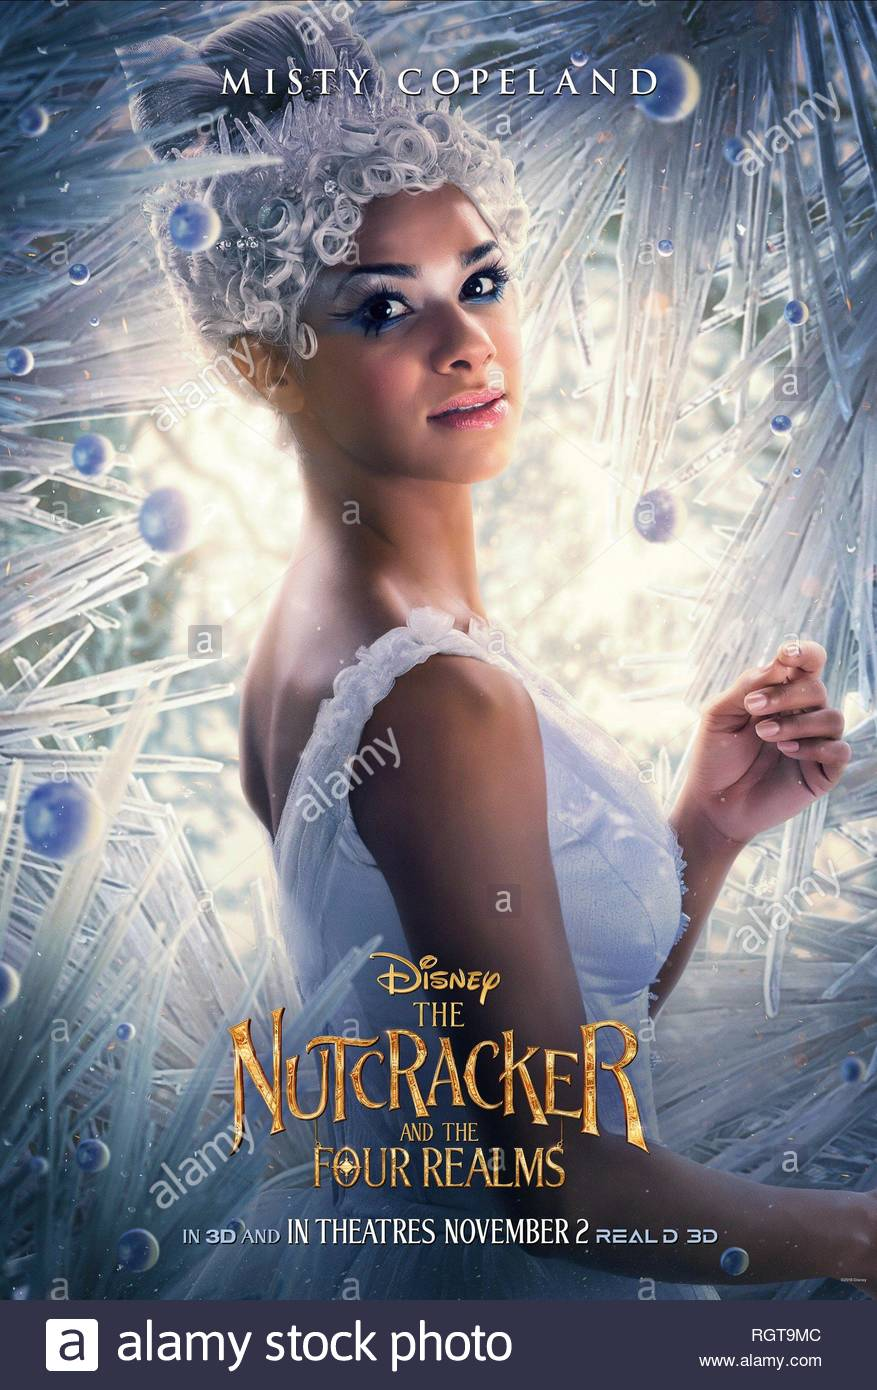 THE NUTCRACKER AND THE FOUR REALMS, MISTY COPELAND POSTER, 2018 - Stock Image